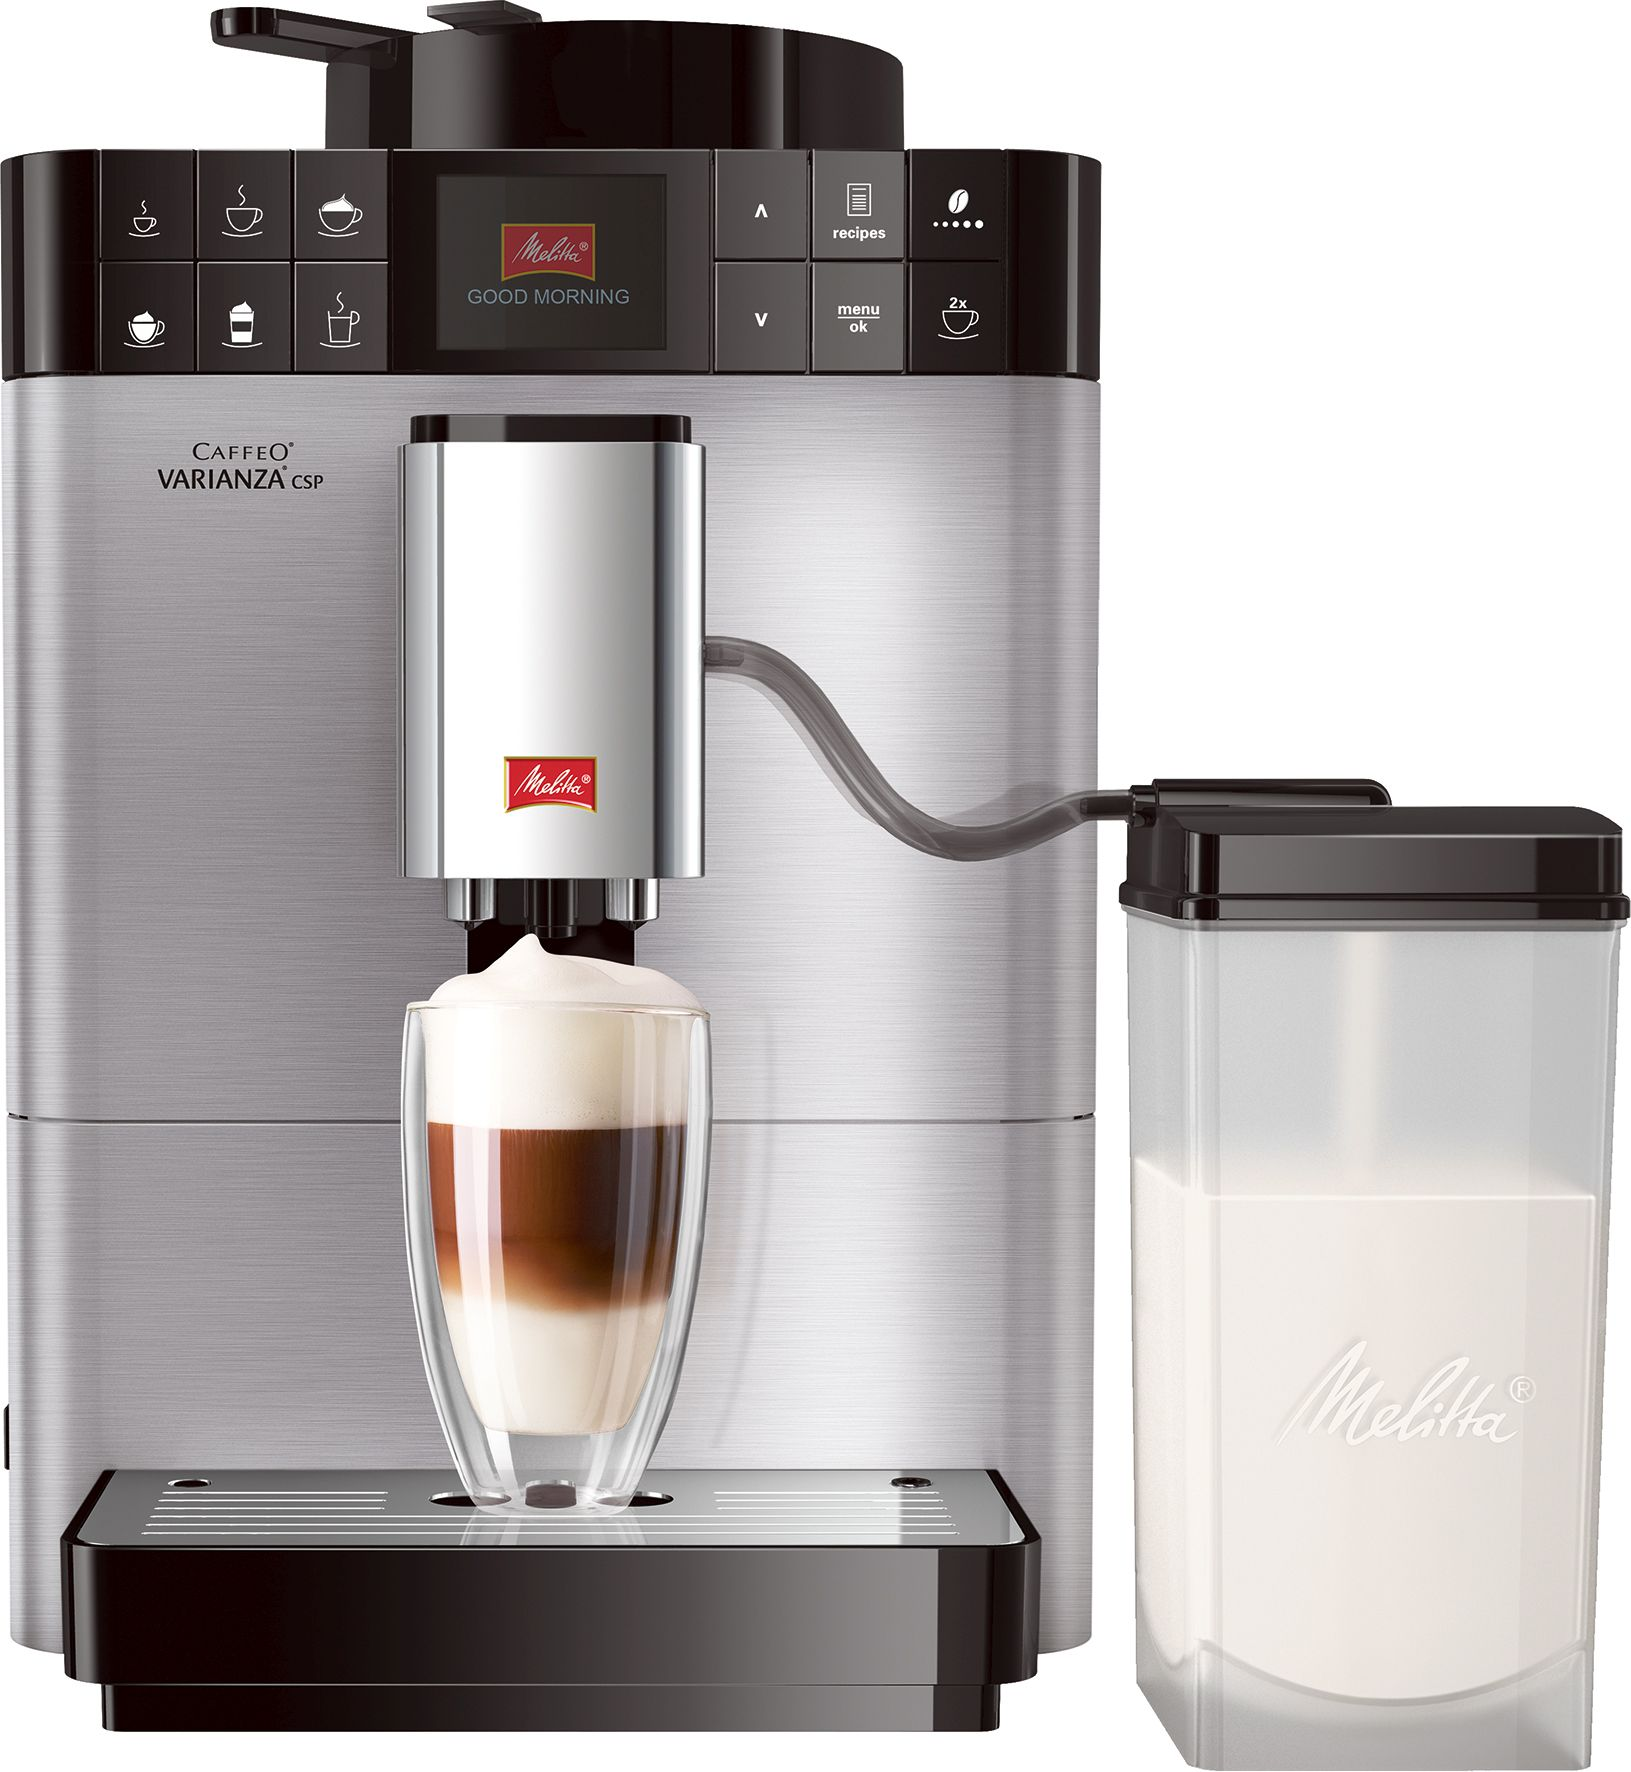 melitta kaffeevollautomat caffeo varianza csp sst my bean select best aroma system plus. Black Bedroom Furniture Sets. Home Design Ideas